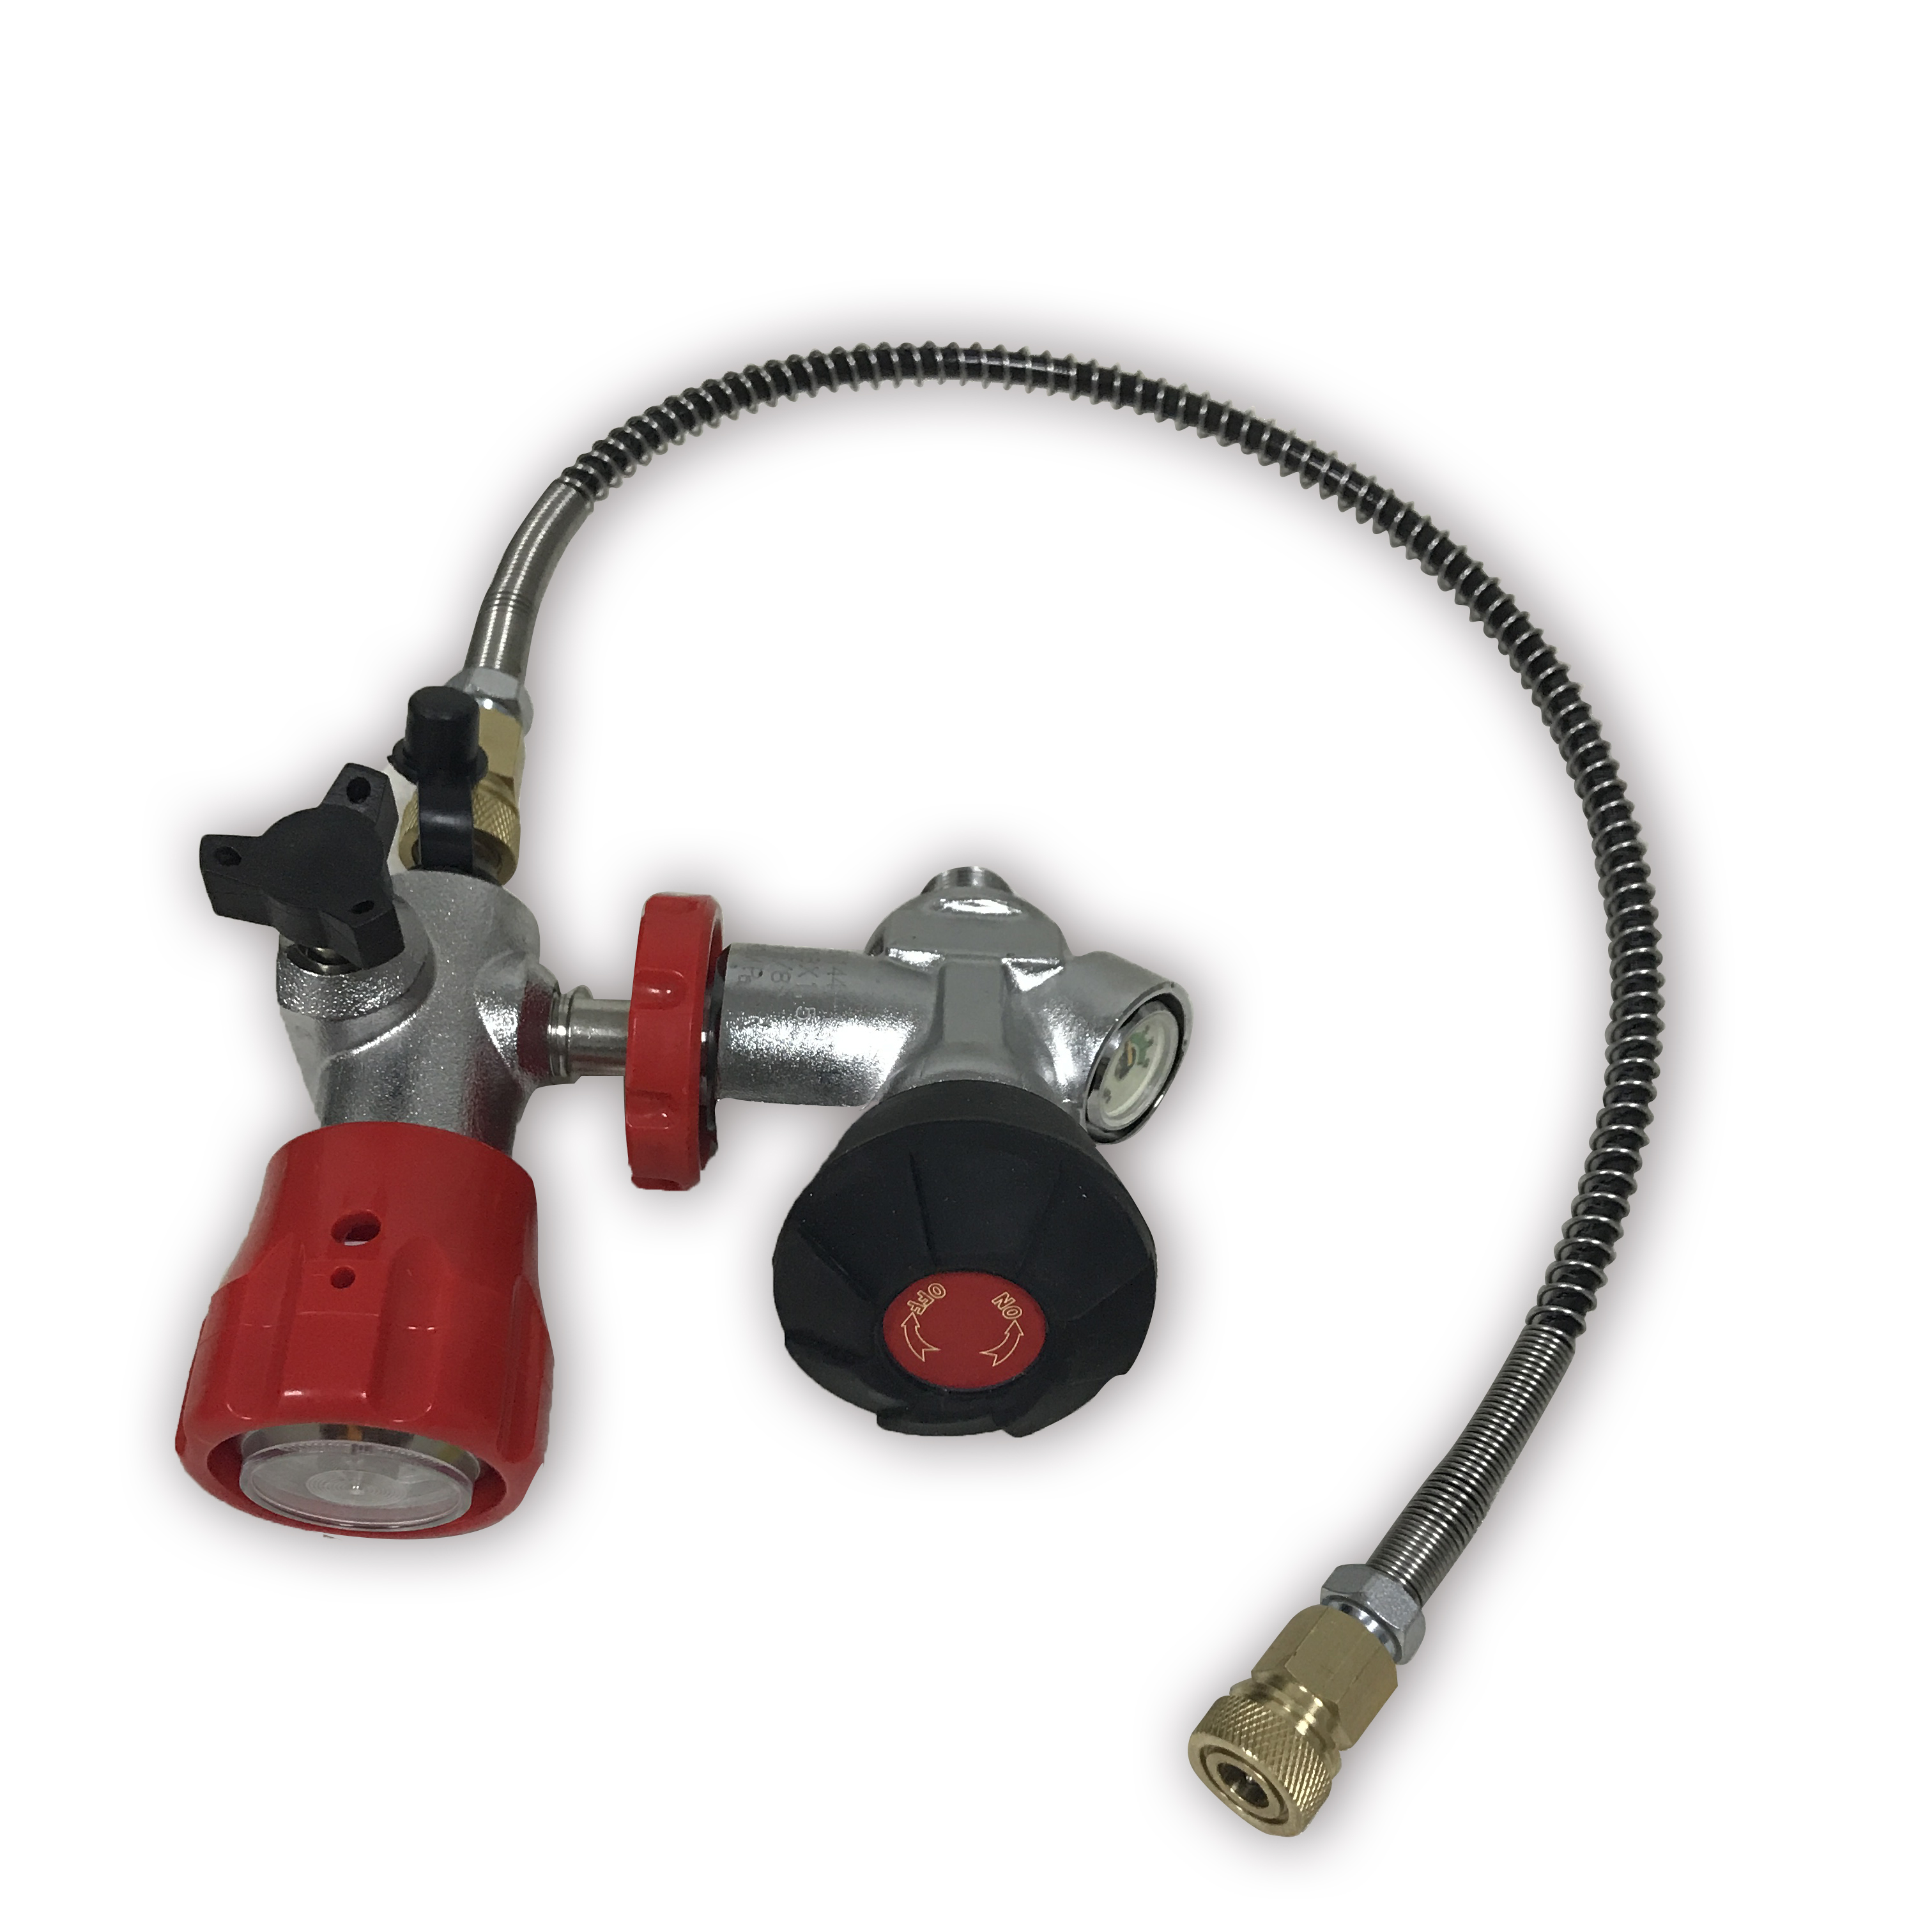 AC301 Pcp Tank Valve With Filling Station Used Filled With Compressed Air For 300Bar Pcp Air Rifle Cylinder/Paintball Tank